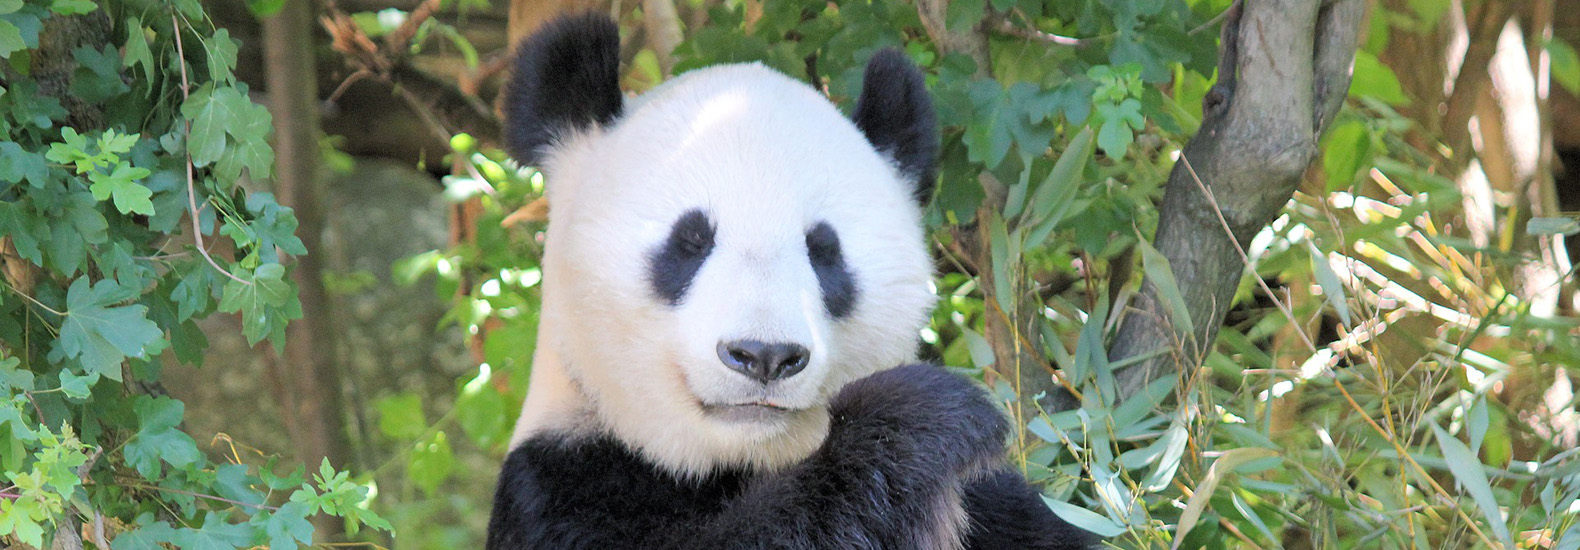 Panda conservation efforts lead to unexpected losses